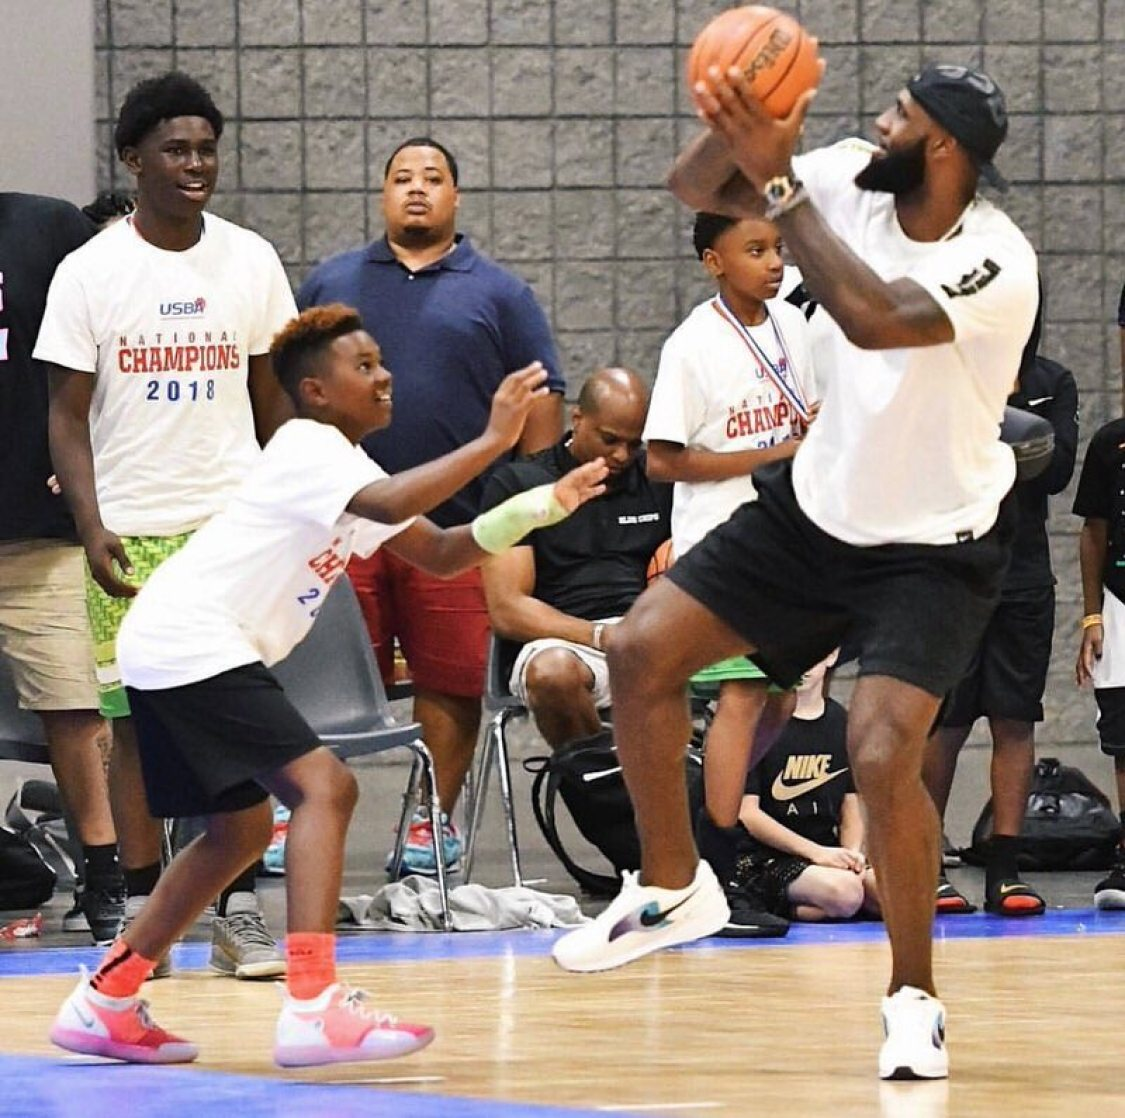 Lebron James in the Nike Air Skylon